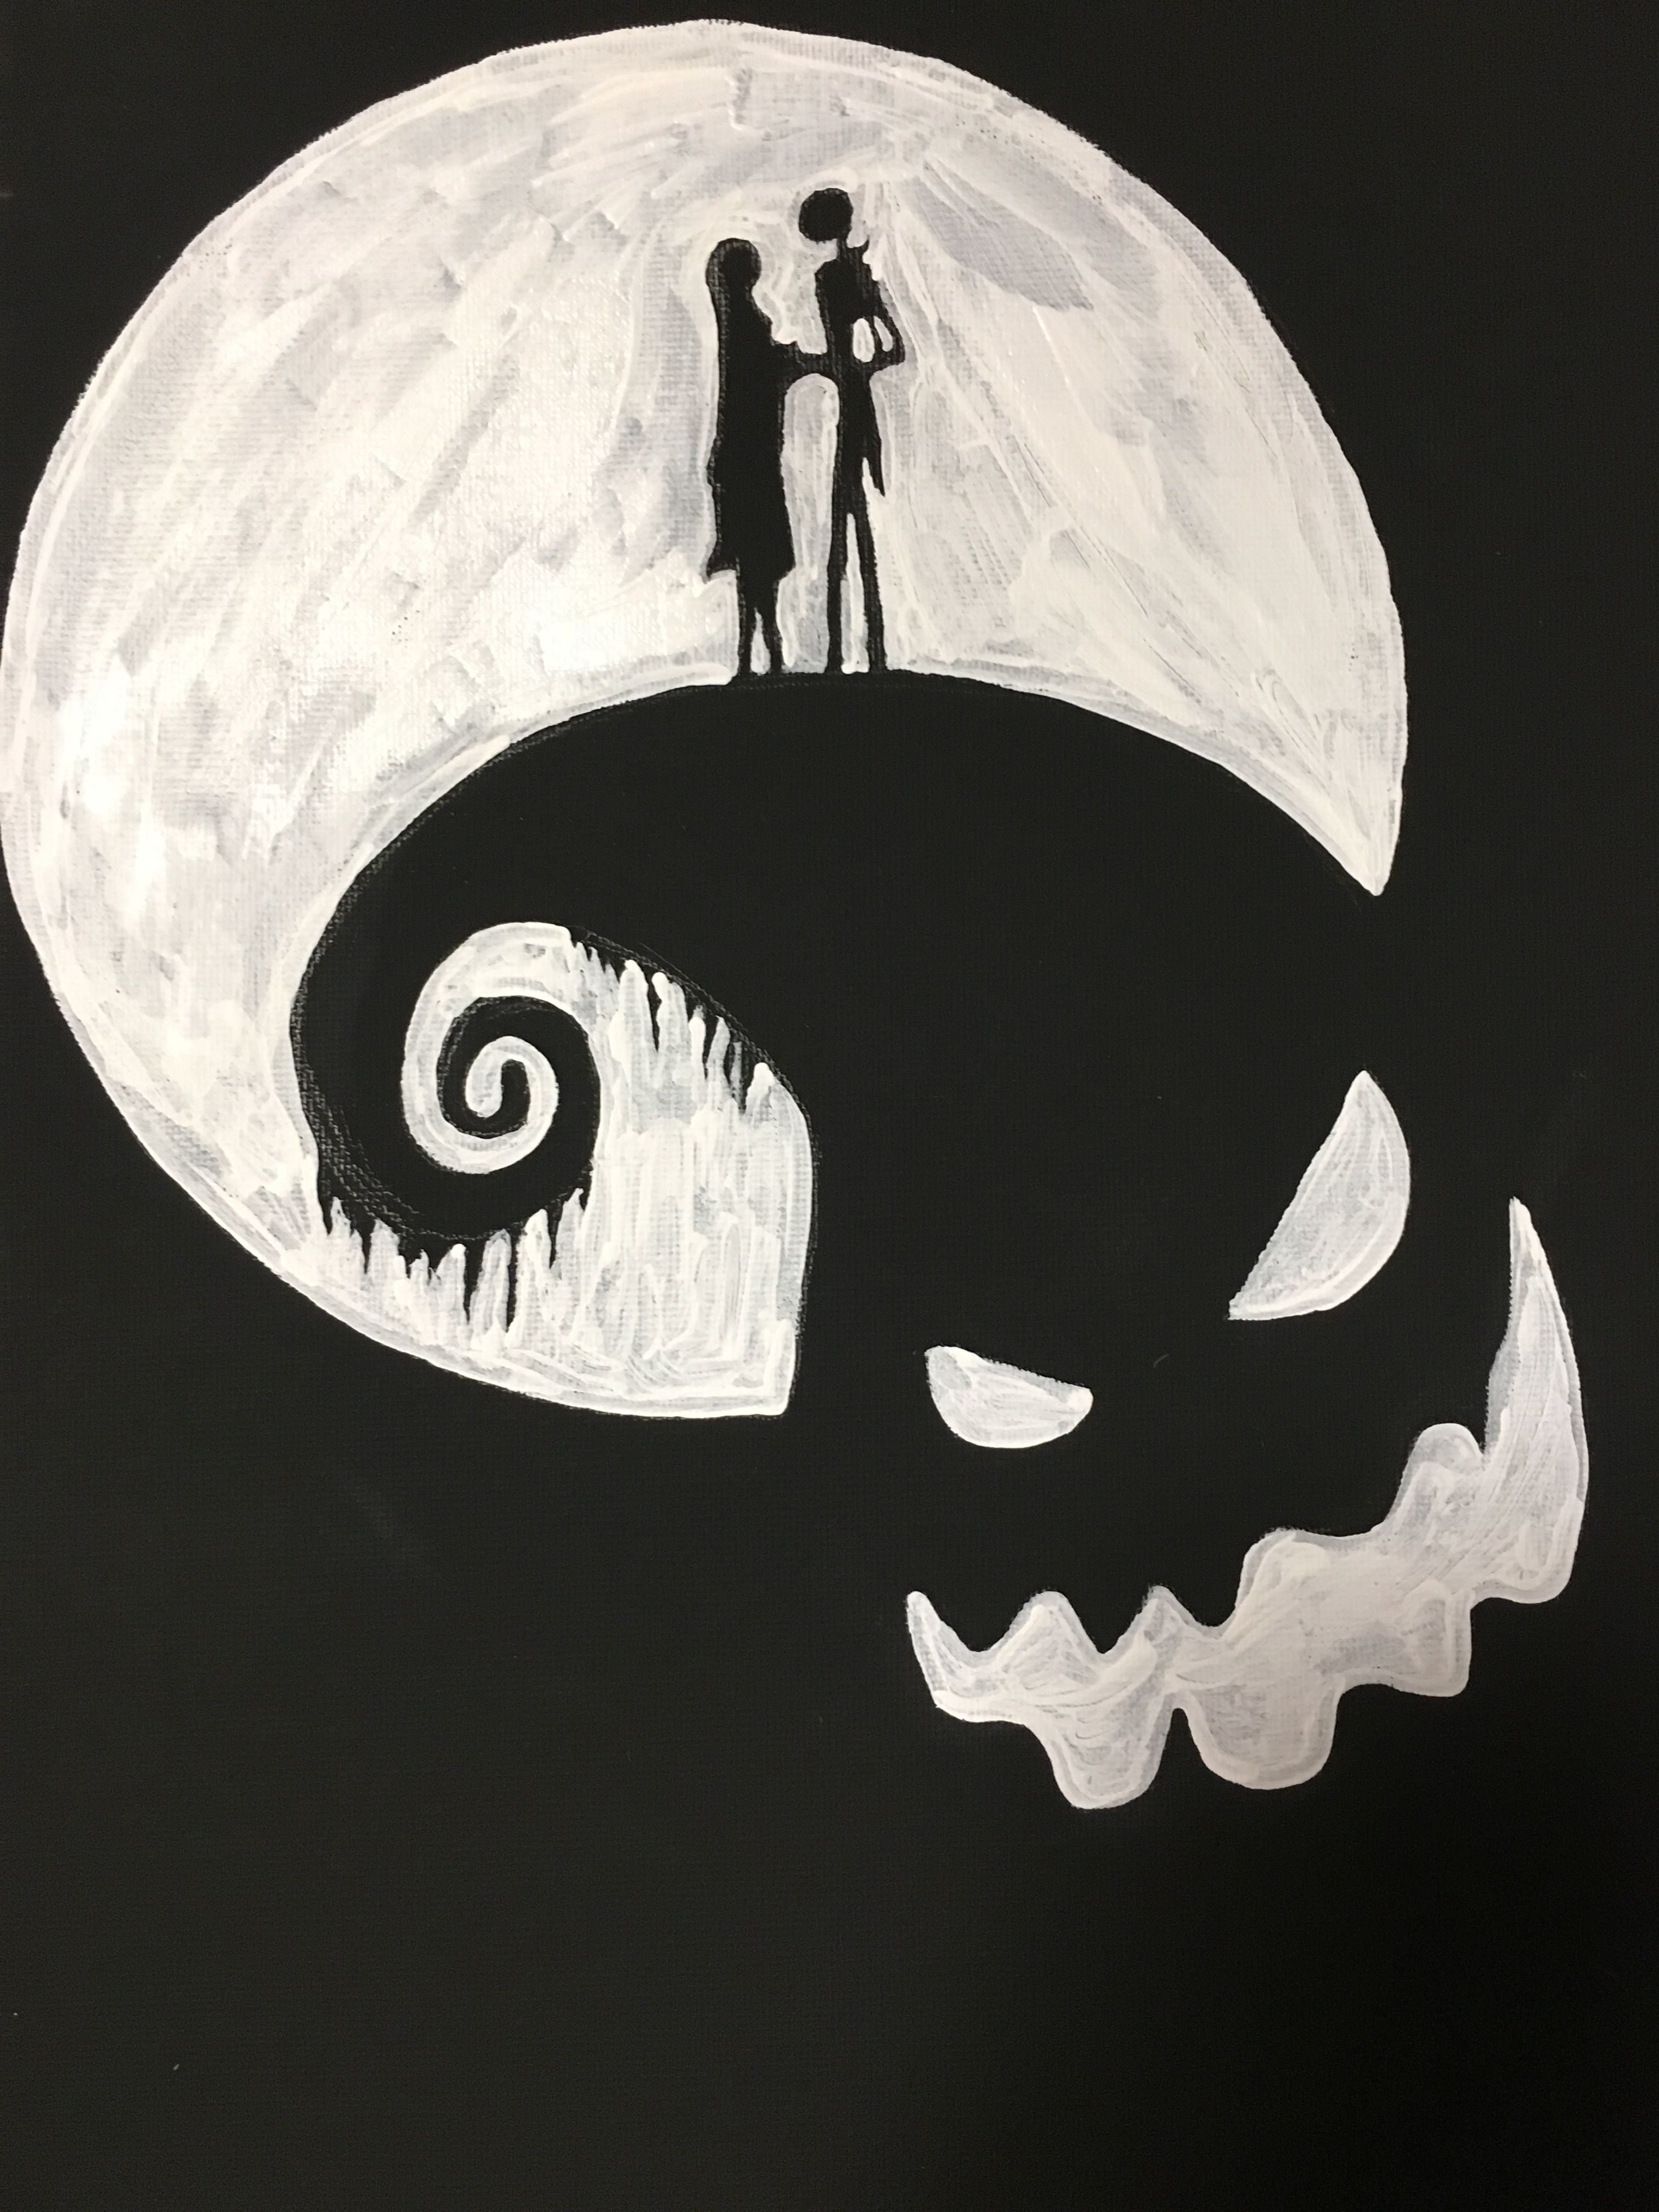 The Nightmare Before Christmas canvas painting using a black